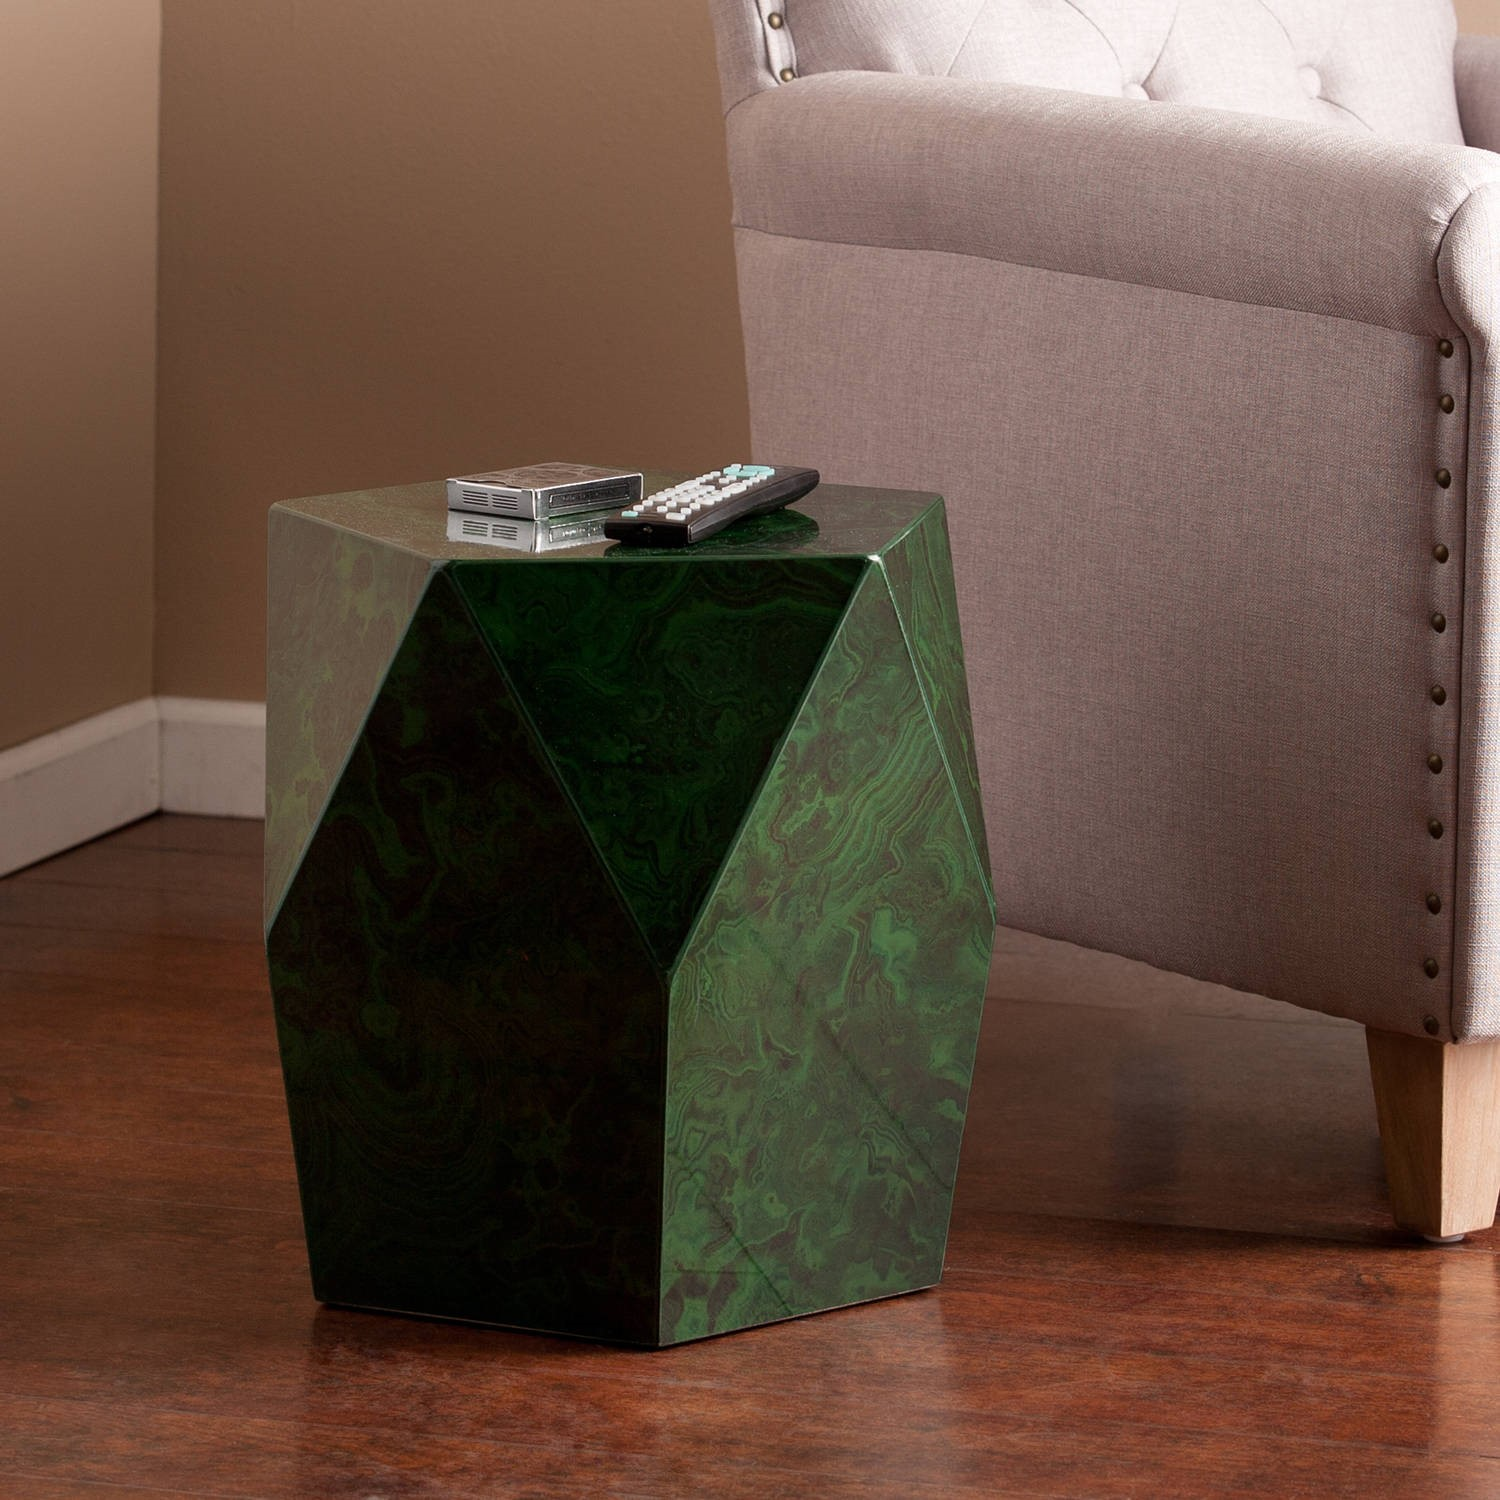 southern enterprises branford faux stone accent table green emerald departments wood stump side inch wide nightstand small square computer desk furniture west elm rocking chair